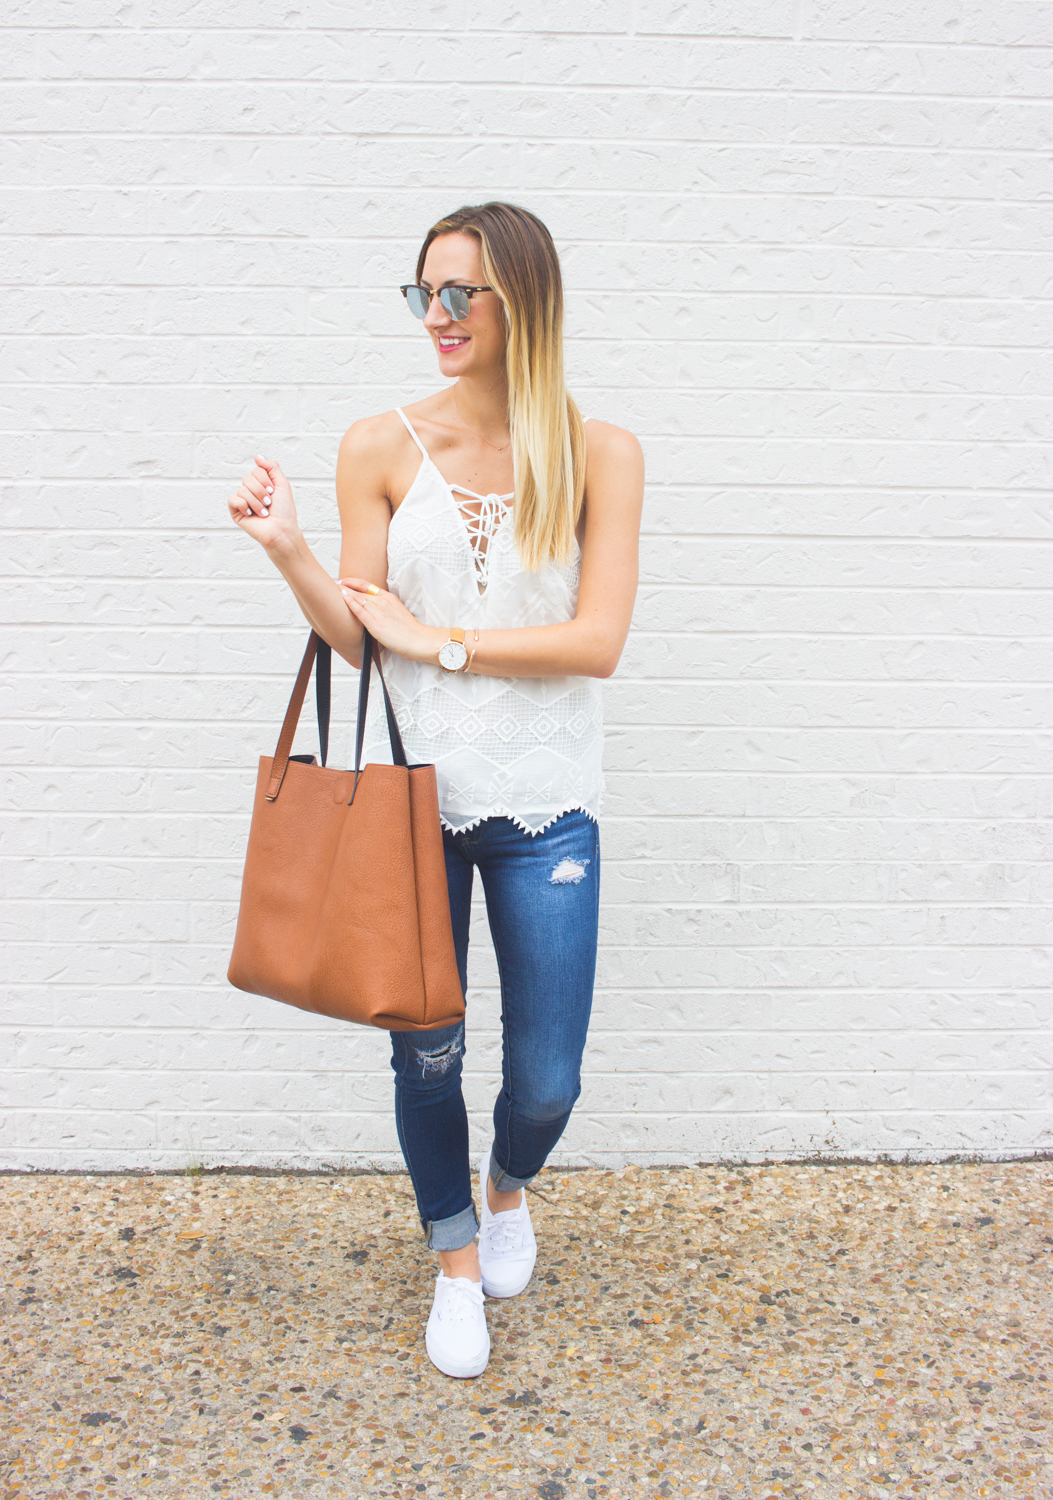 livvyland-blog-olivia-watson-austin-texas-fashion-blogger-nordstrom-vans-white-sneakers-summer-outfit-2